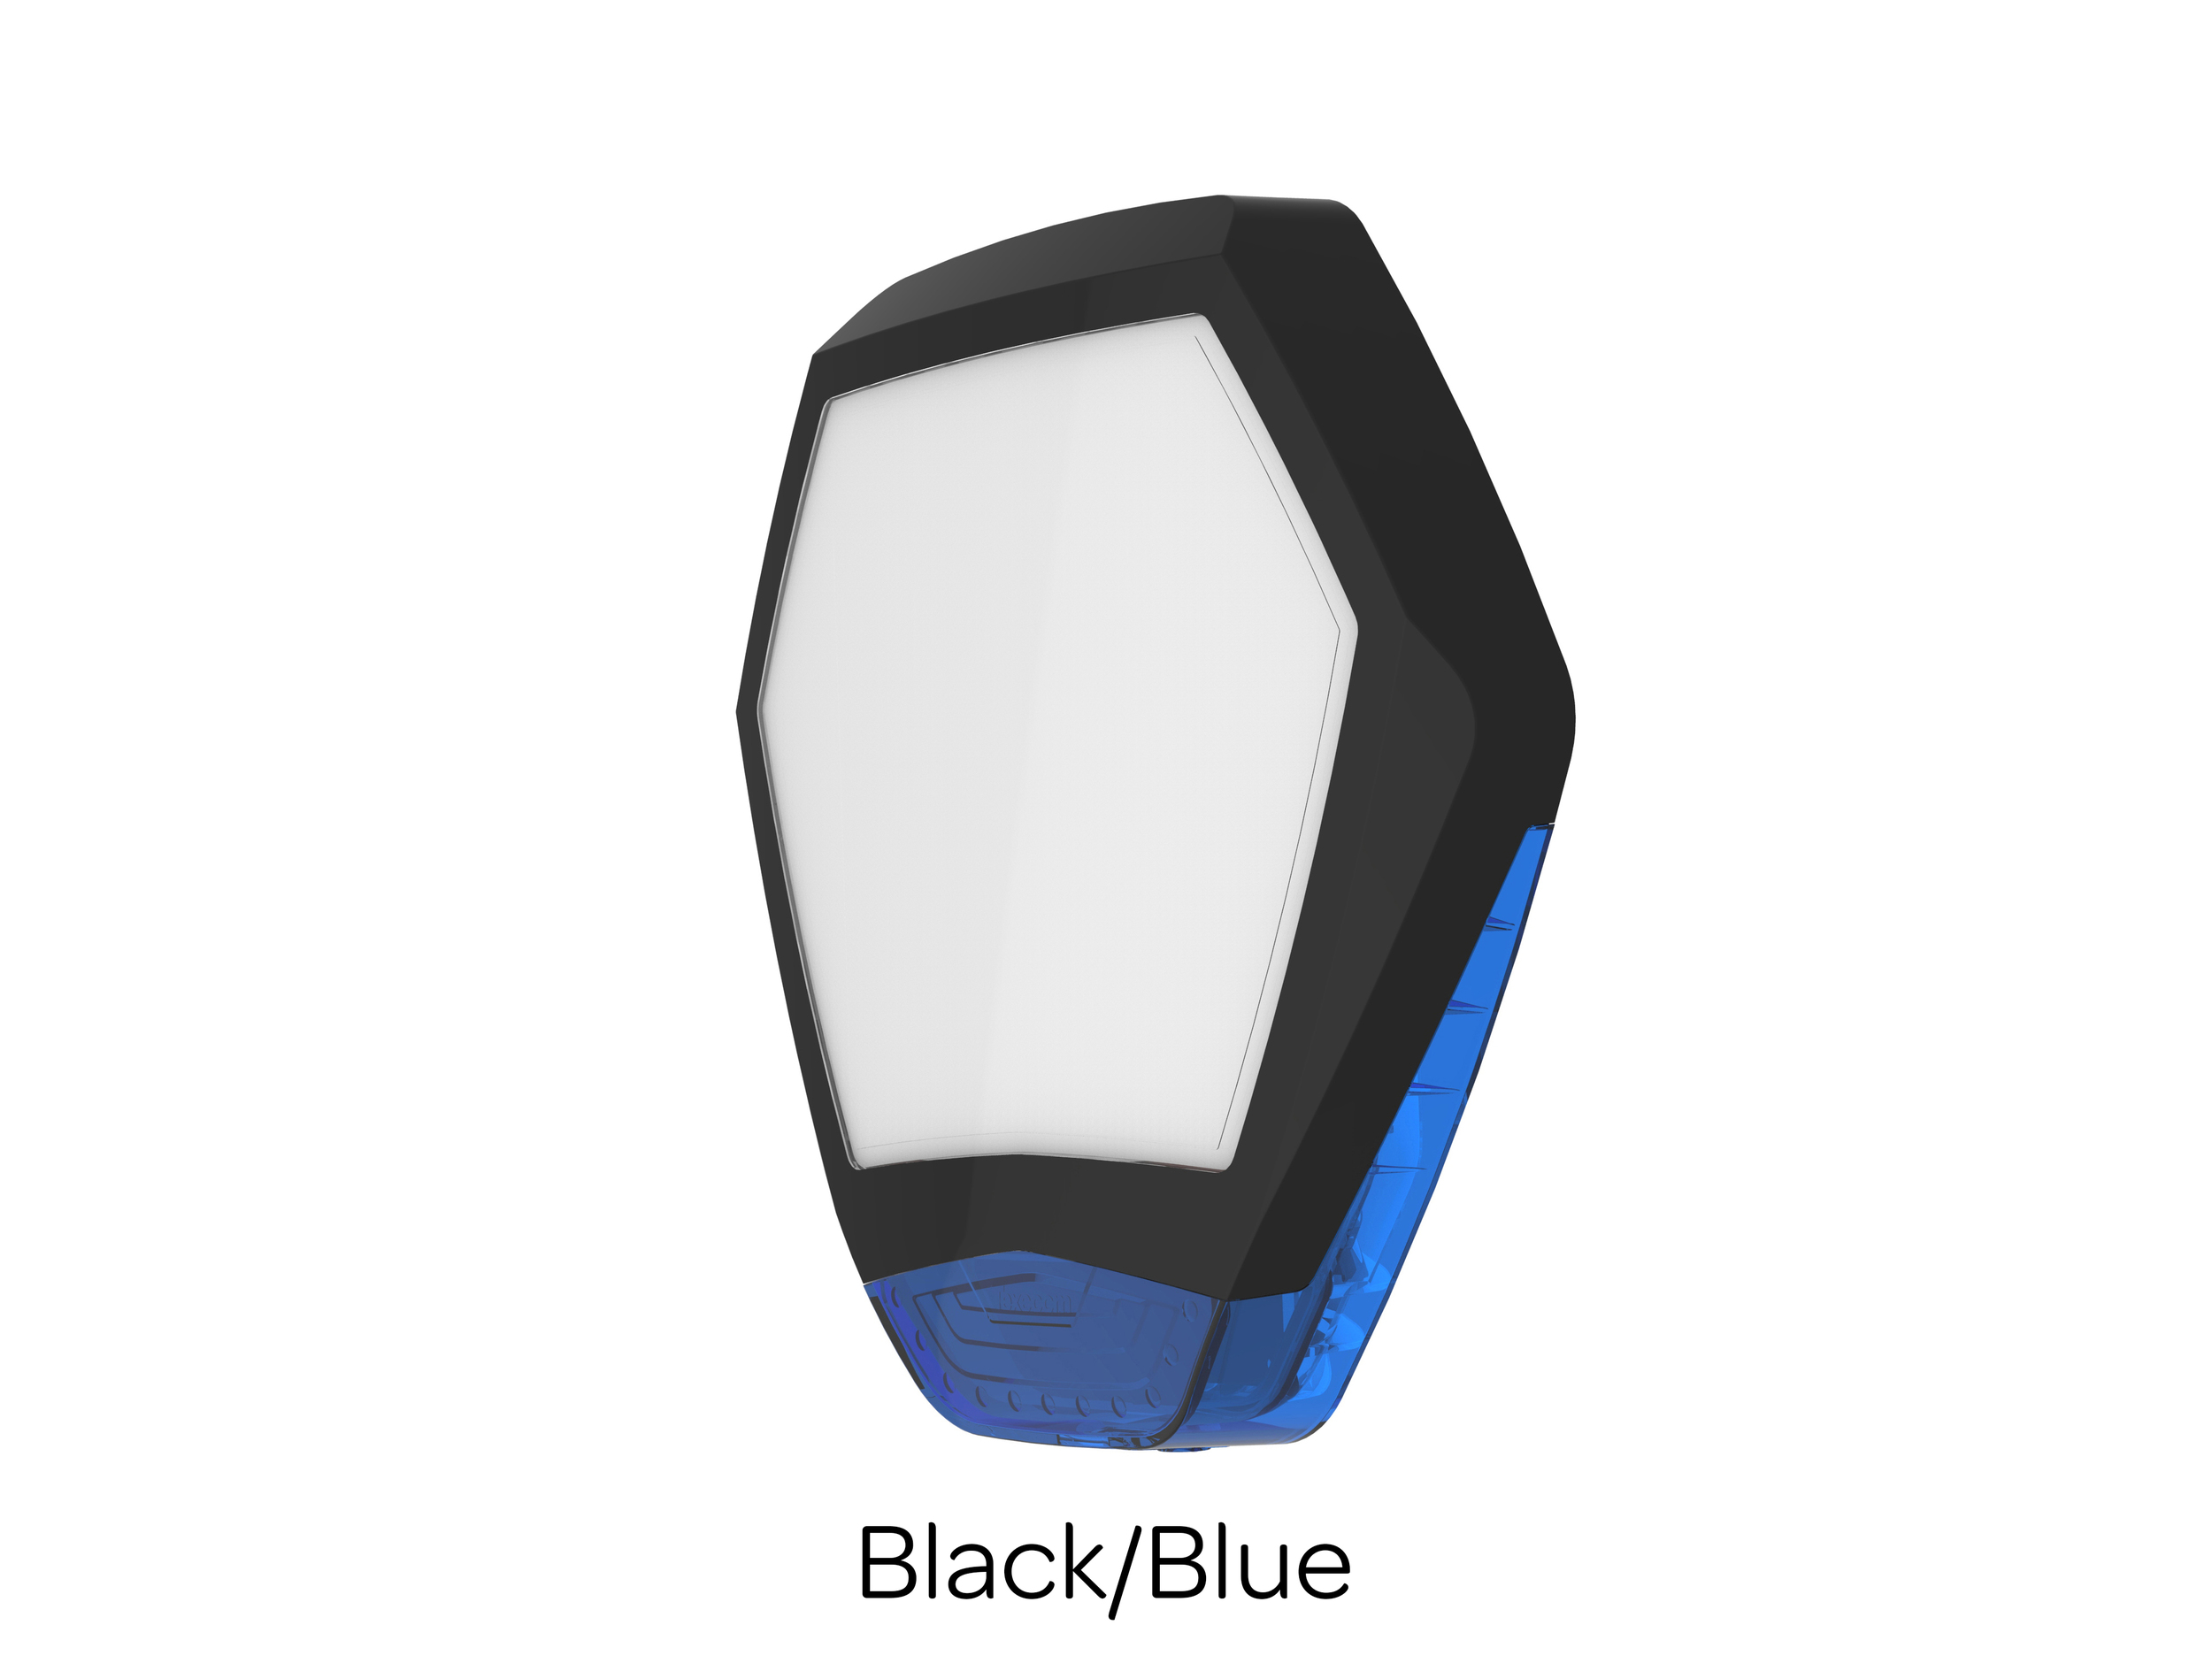 Odyssey X3 Cover Black/Blue